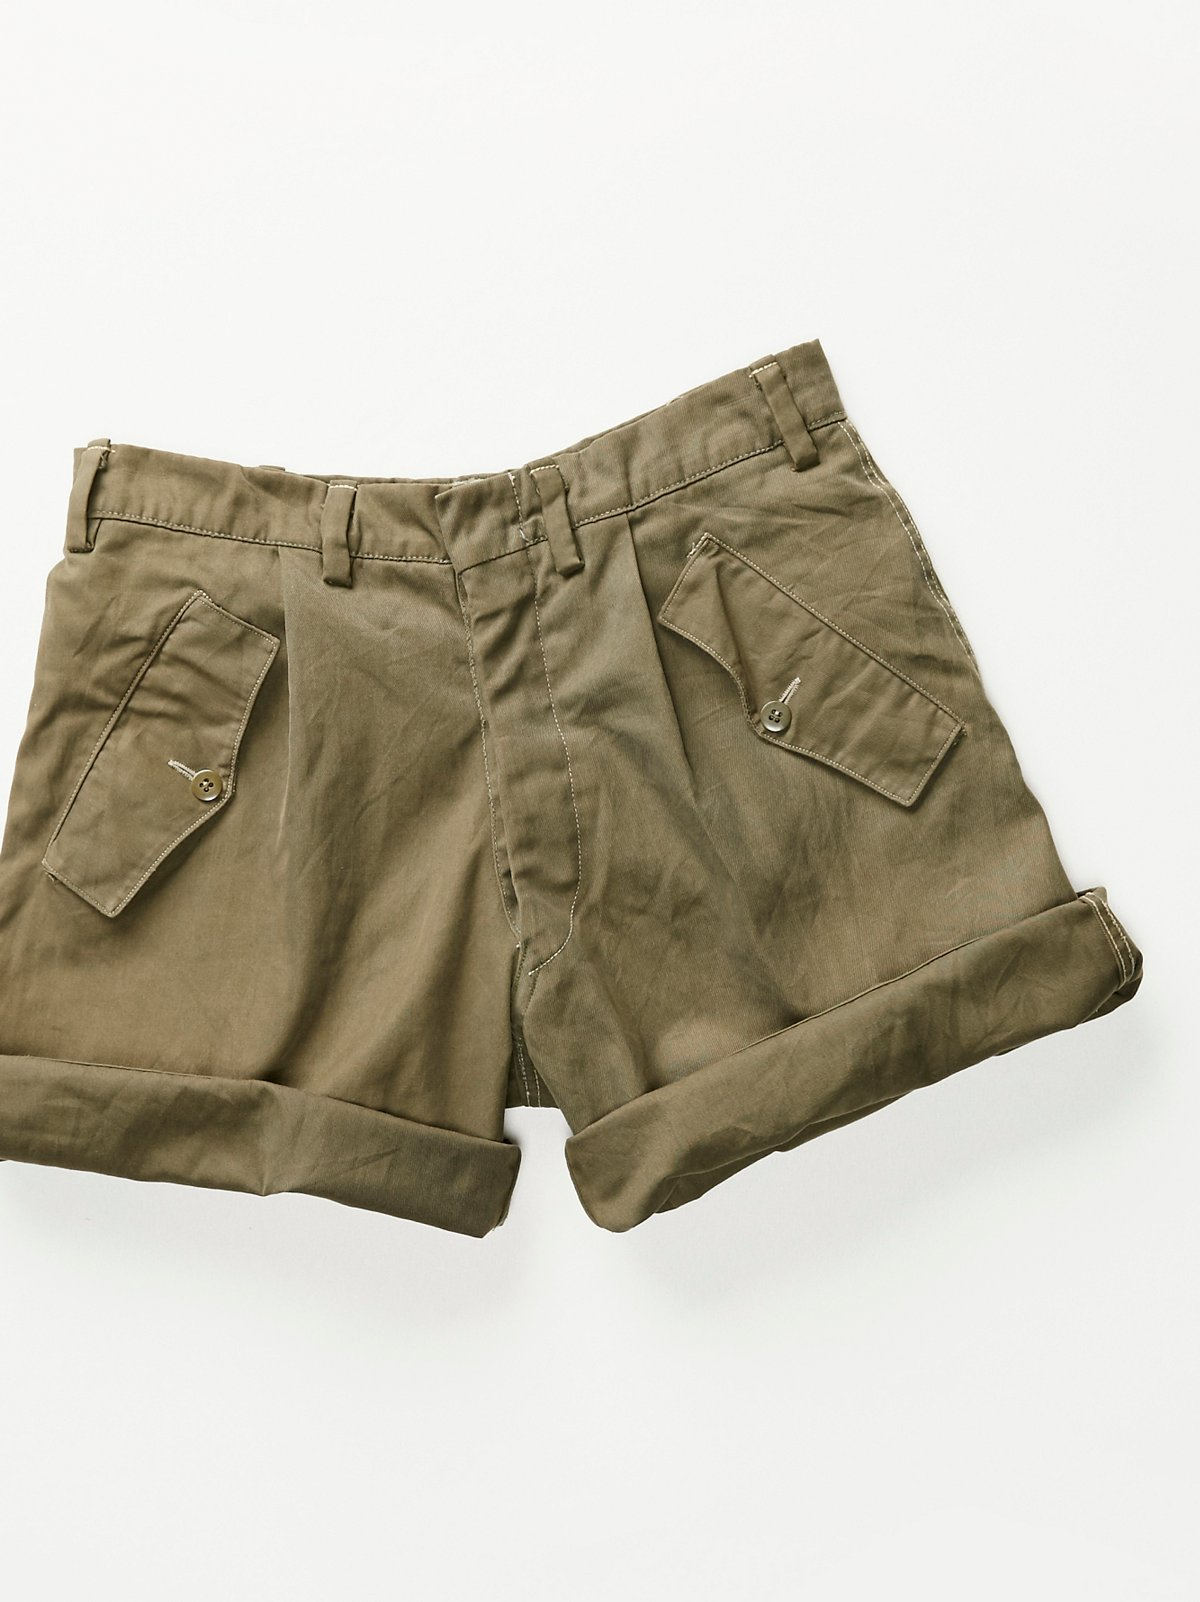 Vintage 1960s Military Shorts